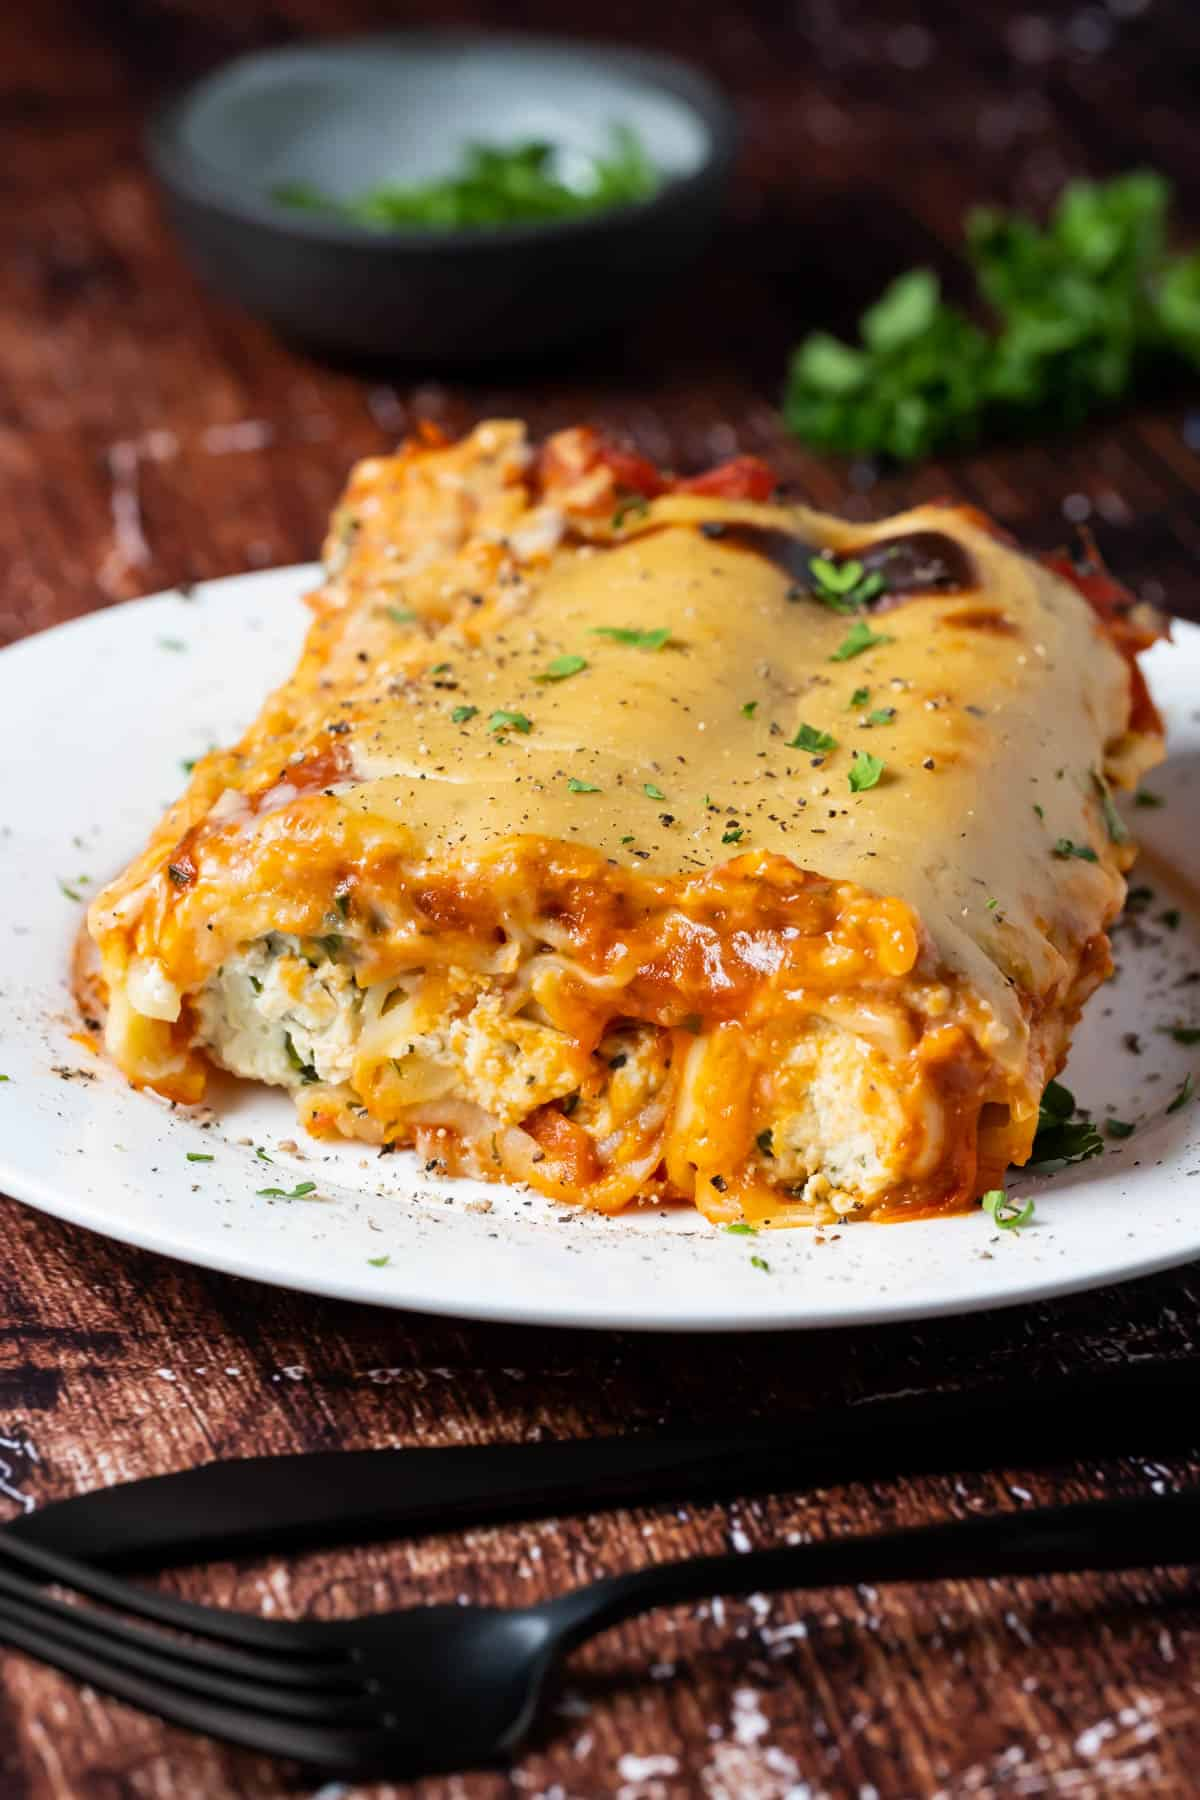 Vegan cannelloni with fresh chopped parsley on a white plate.